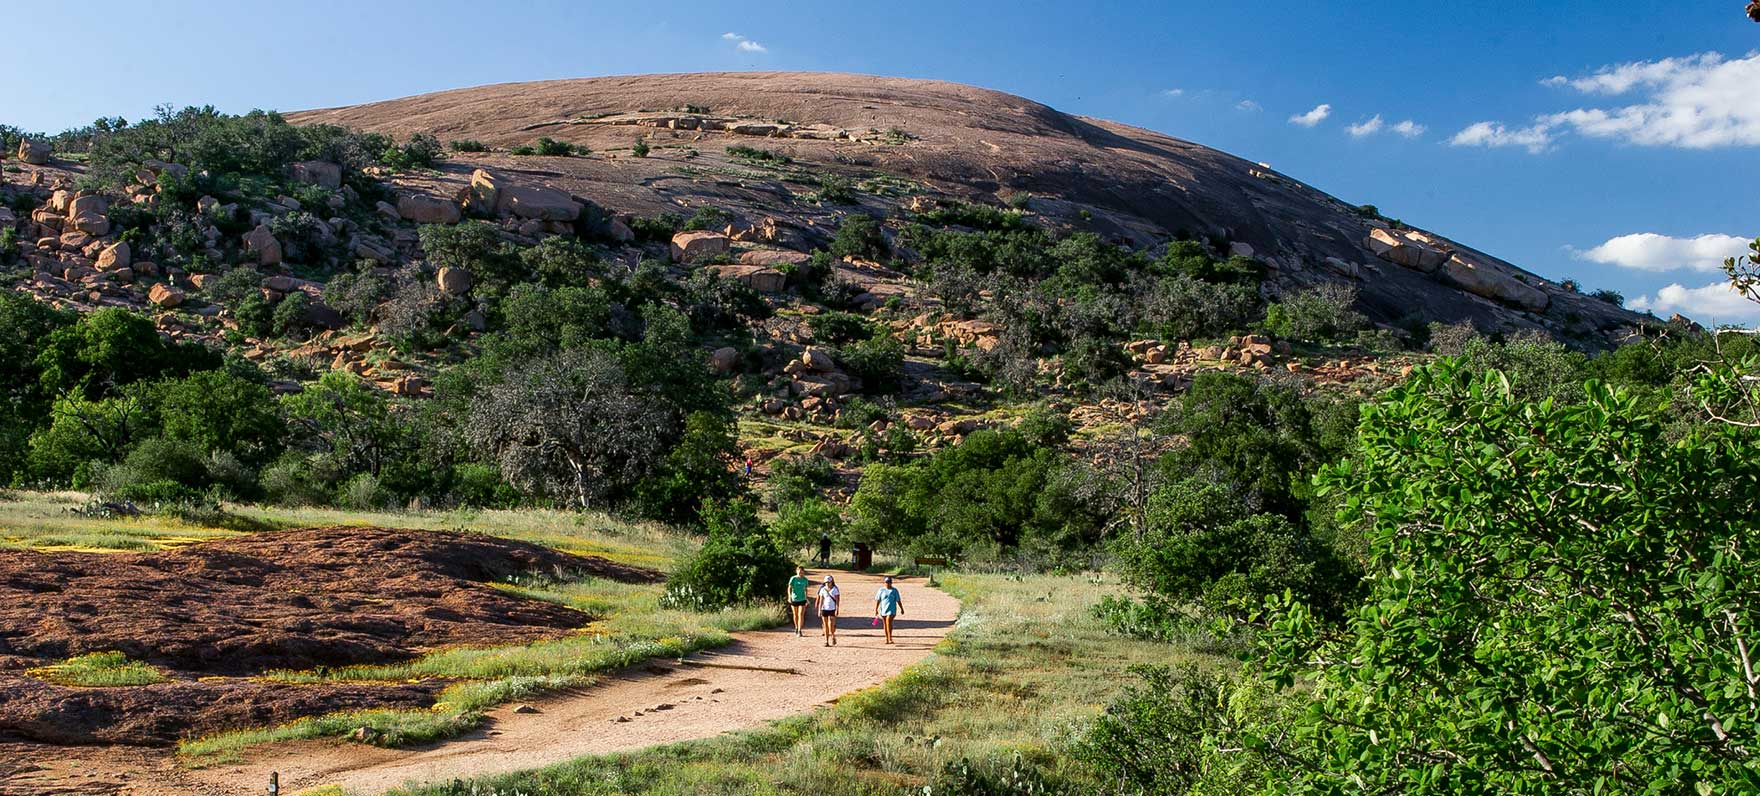 Enchanted Rock is a beautiful pink granite dome perfect for exploring and enjoying nature.